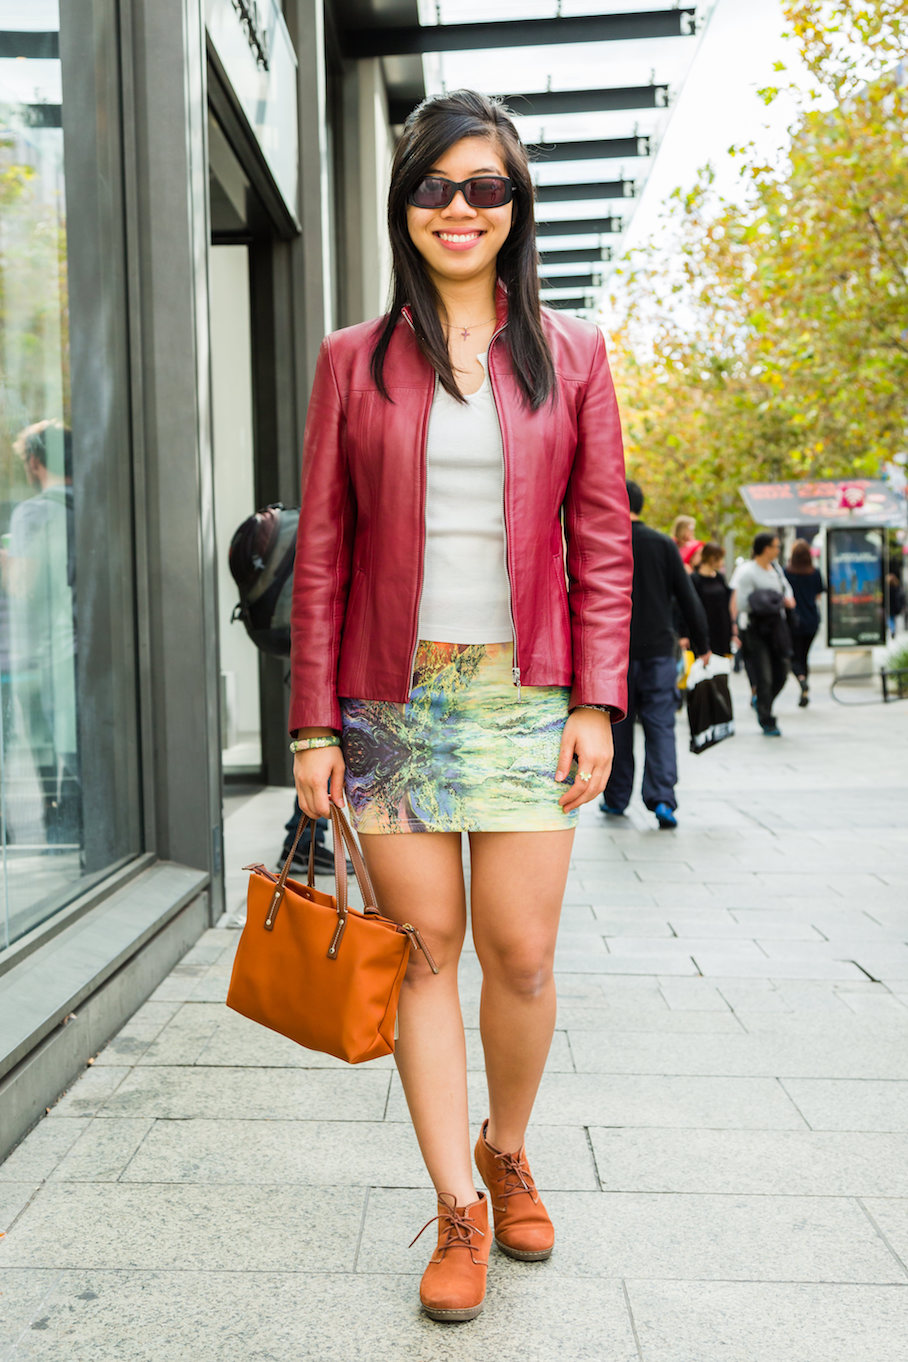 "WA: Joseanne Wong, student, Perth CBD. ""I like to wear colour."" Photo: <a href=""http://www.rahstudios.com.au/street-style.html/"" target=""_blank"">Alain Quah</a>"